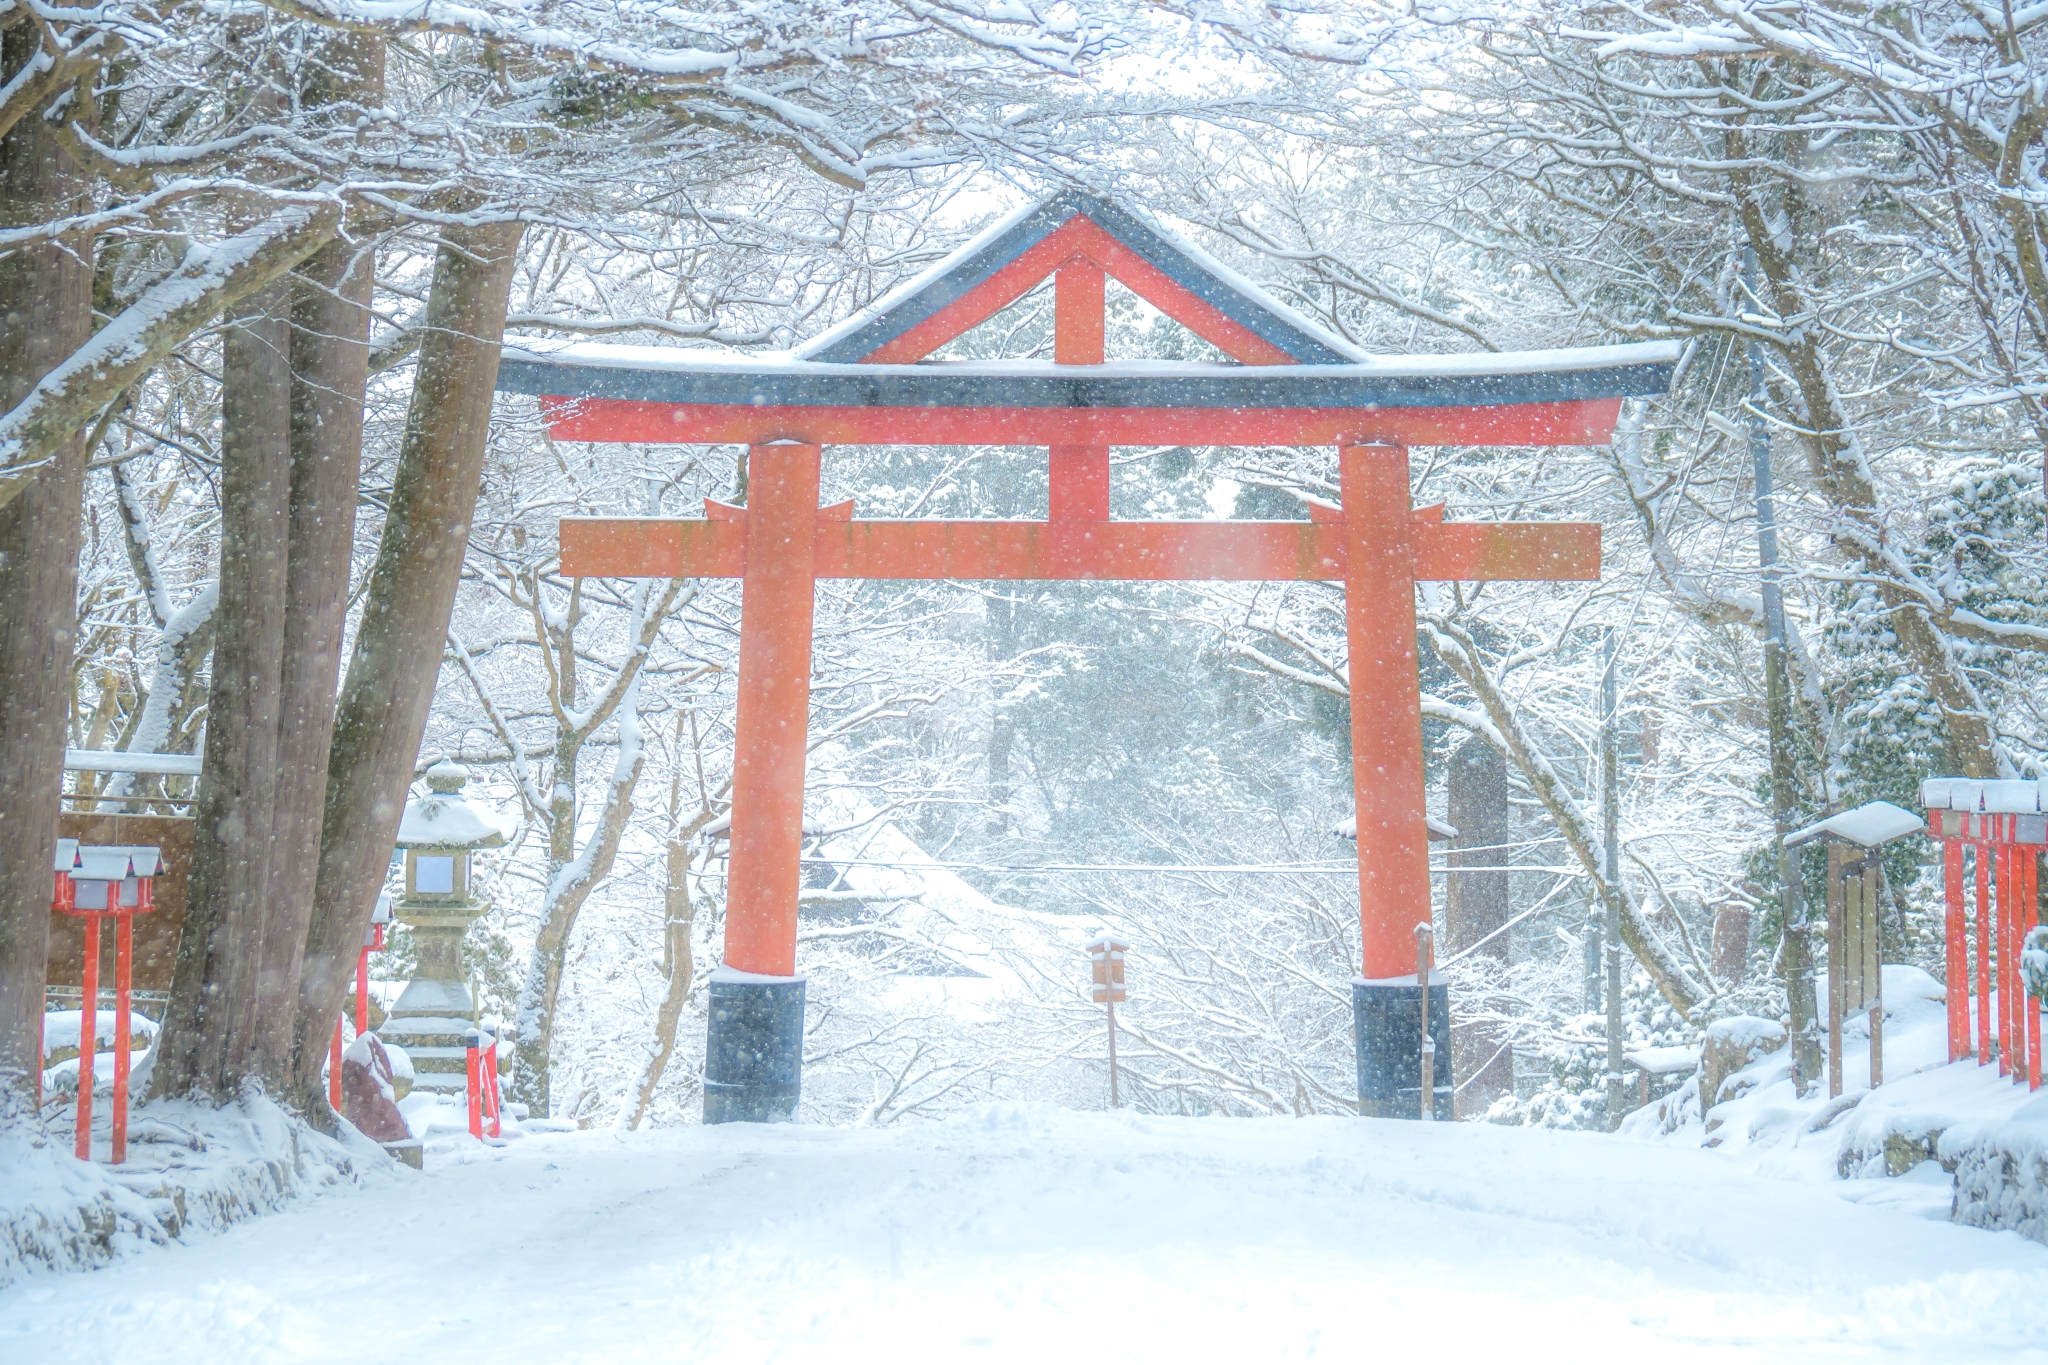 Tori gate covered in snow